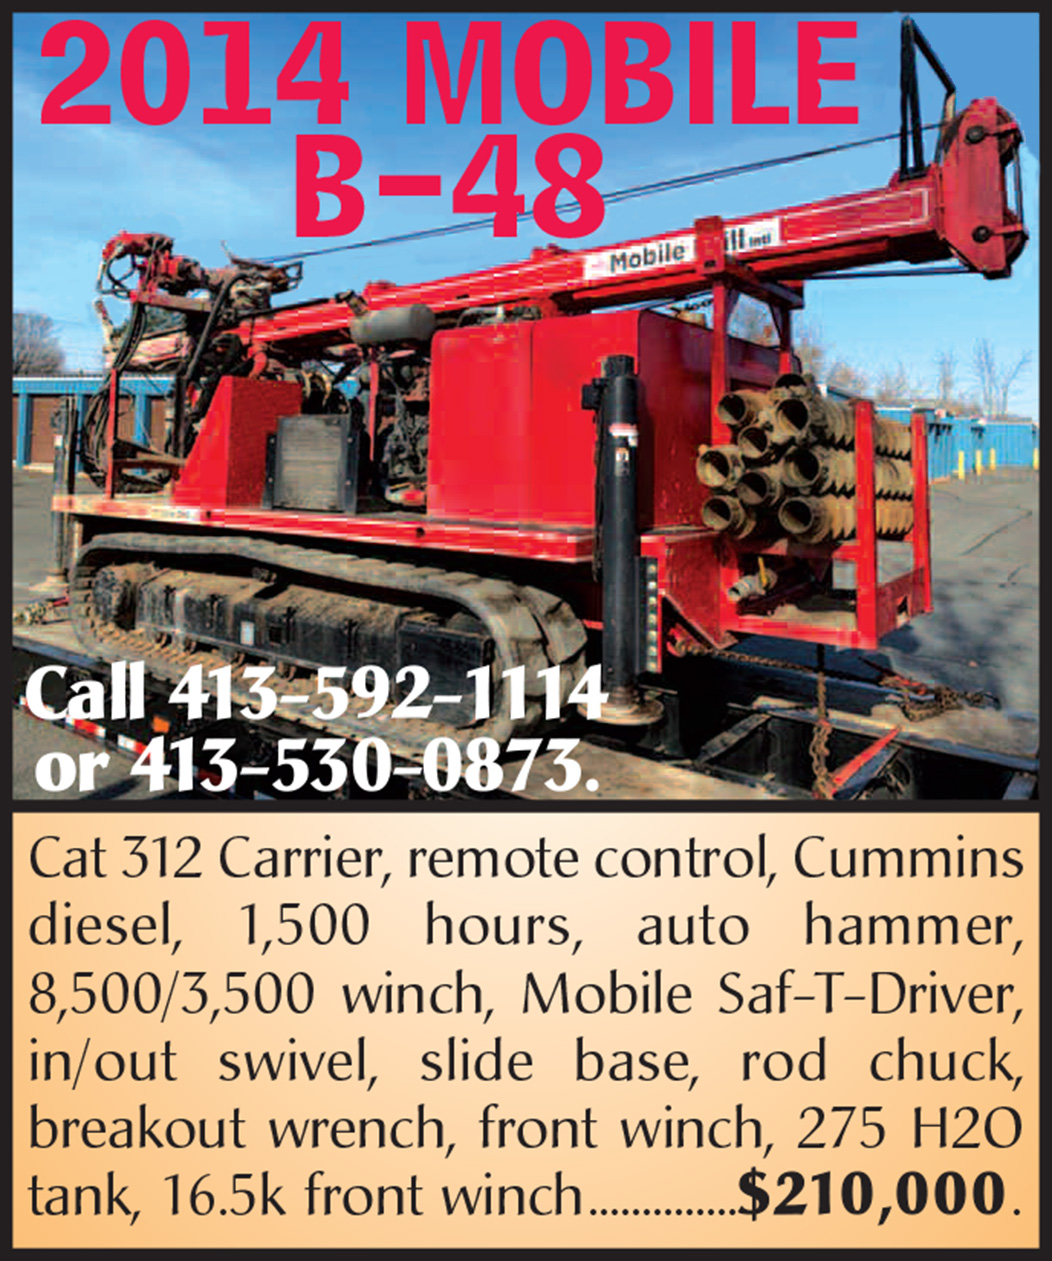 2014 MOBILE B-48 DRILL RIG